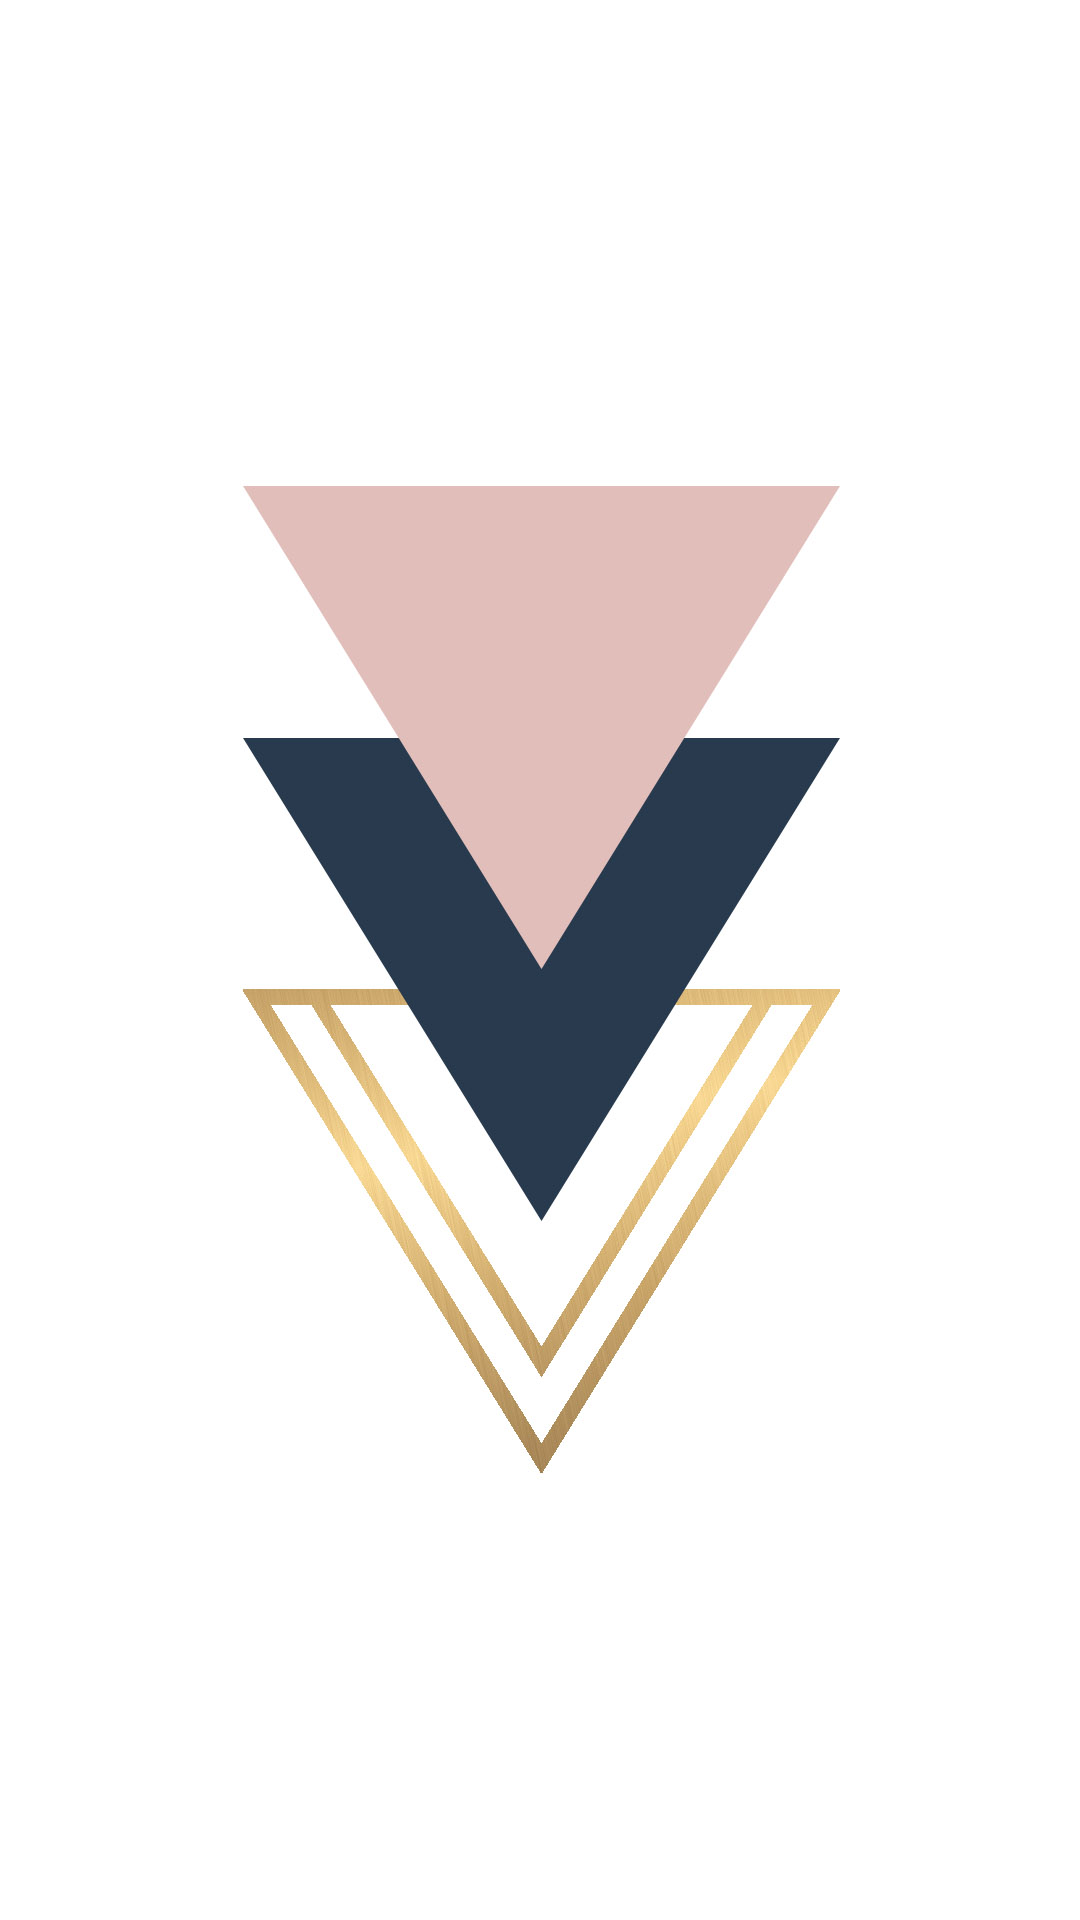 Blush-Navy-gold-foil-triangle-geo-shapes-you-can-download-for-free-on-the-blog-For-any-de-wallpaper-wpc5802943